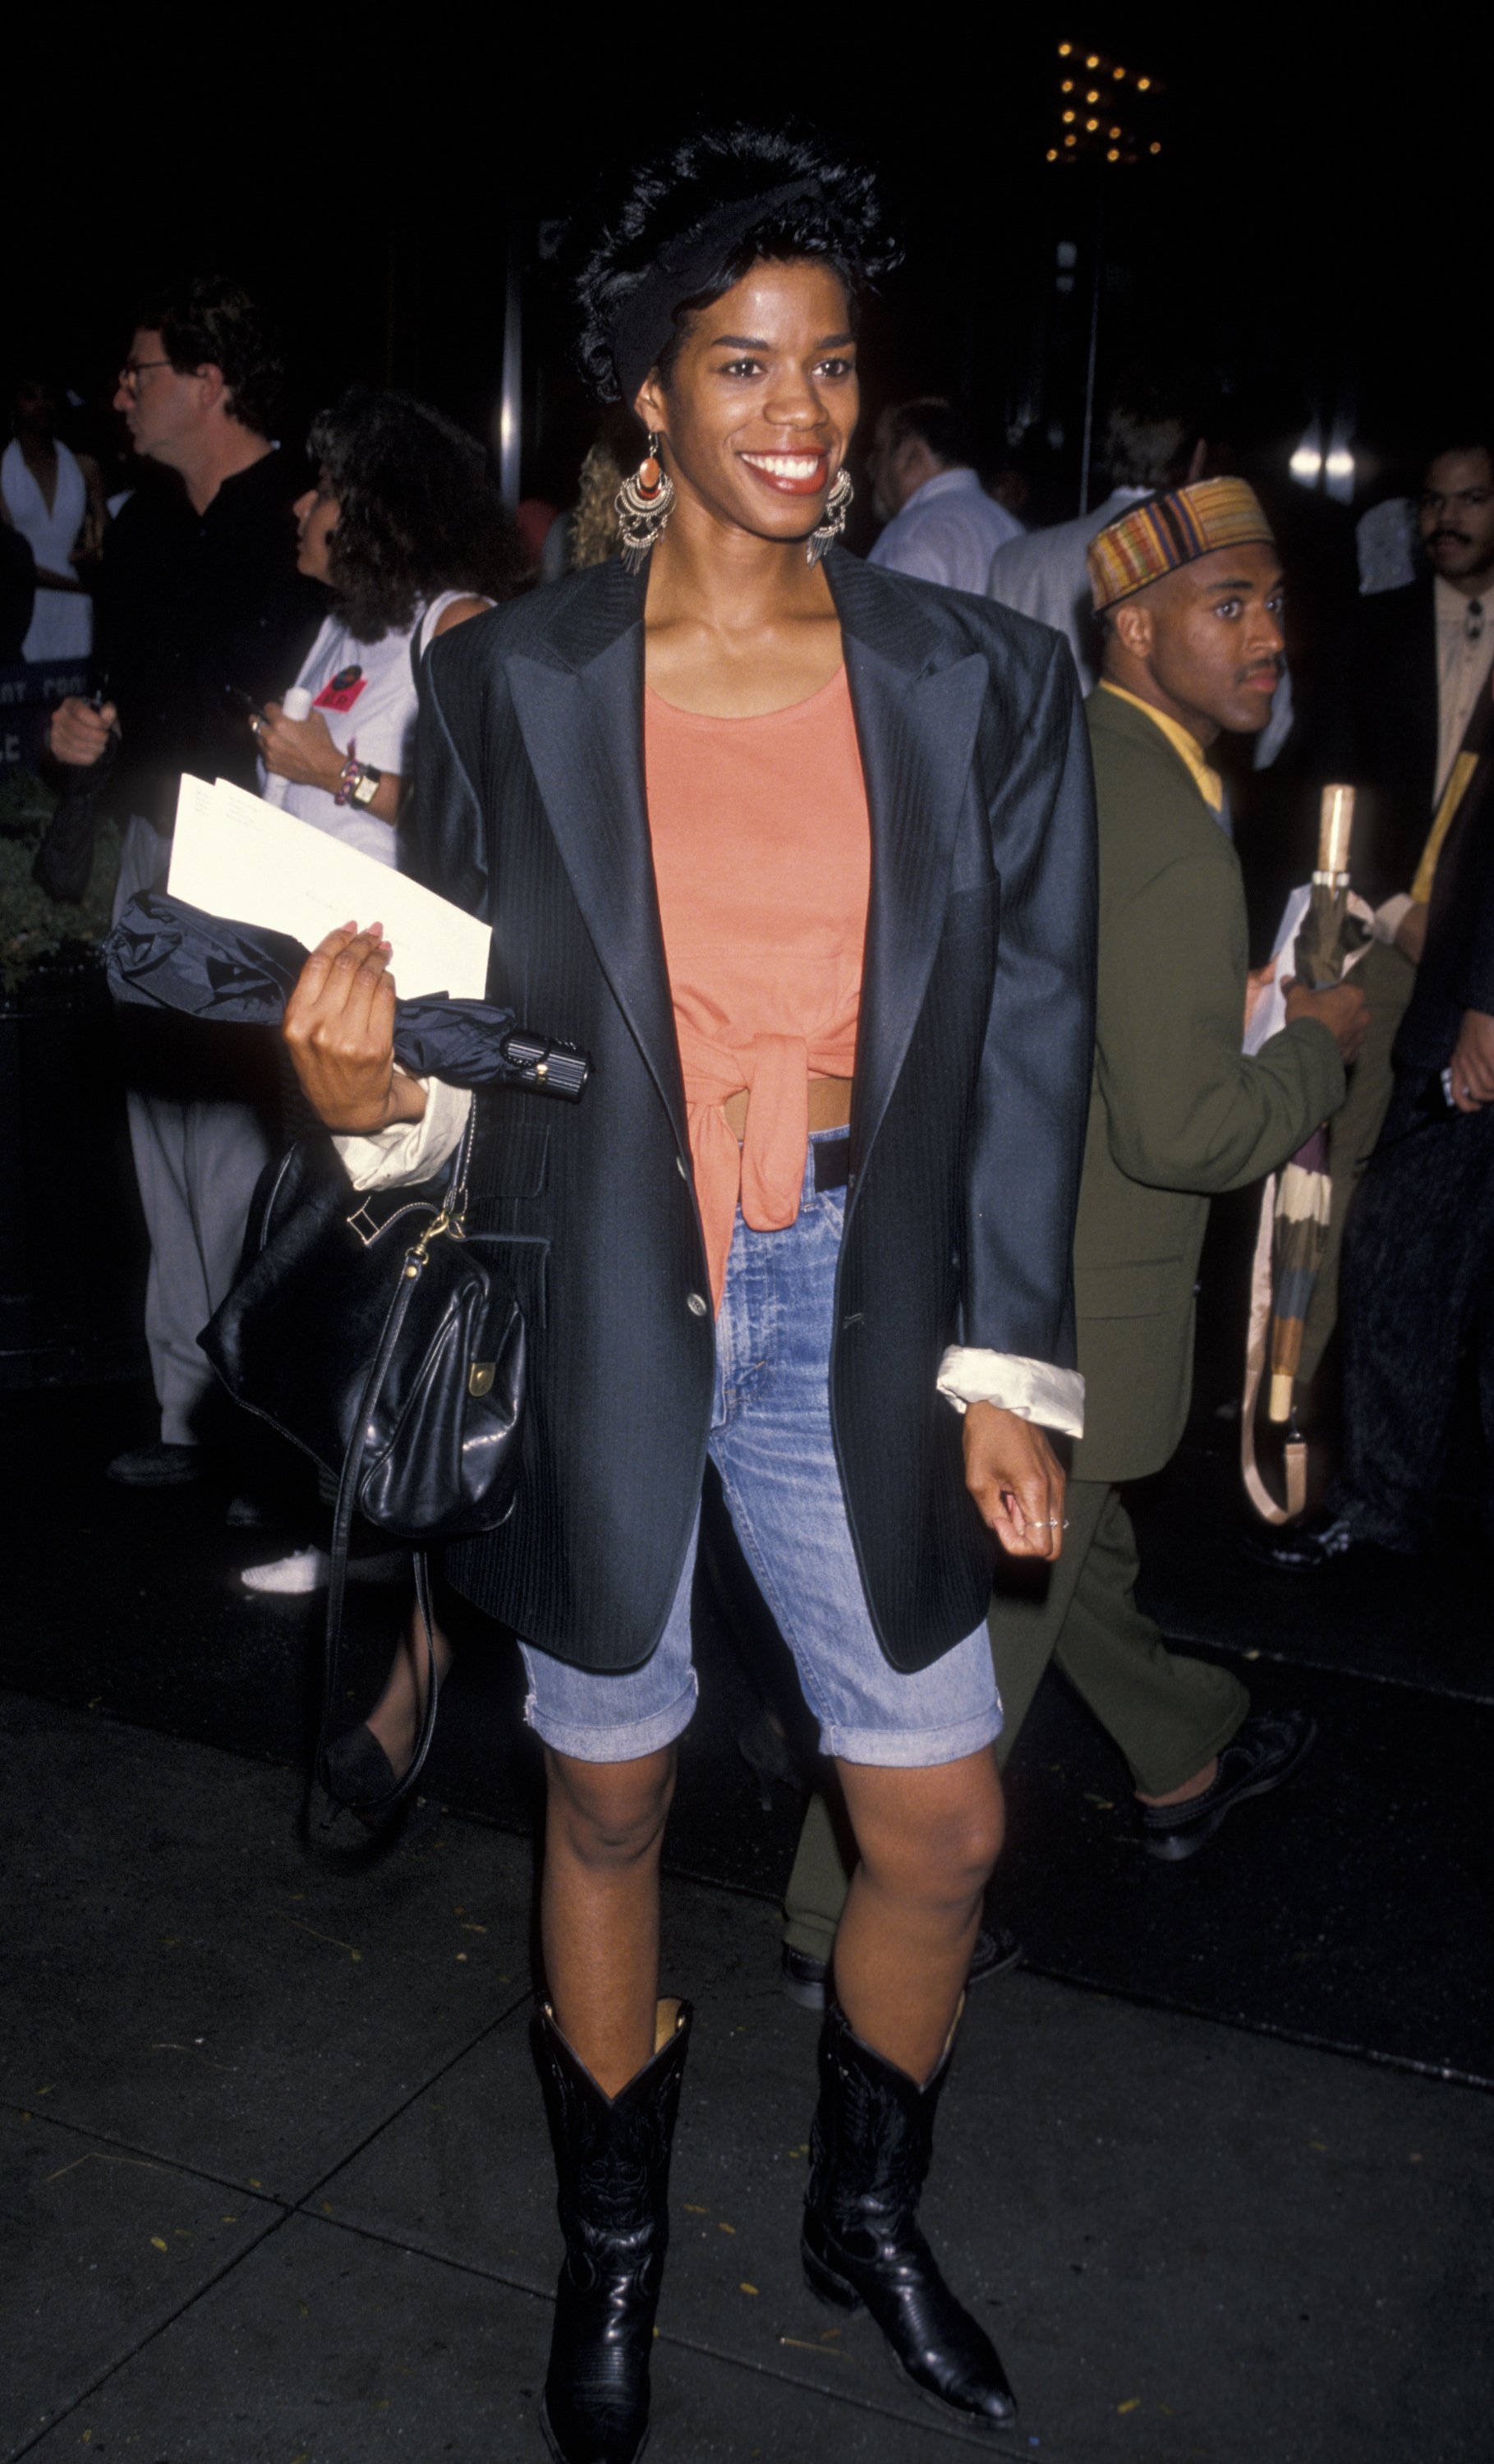 """Kim Wayans attends the premiere of """"Mo' Better Blues"""" at Ziegfeld Theater in New York City on July 23, 1990. 